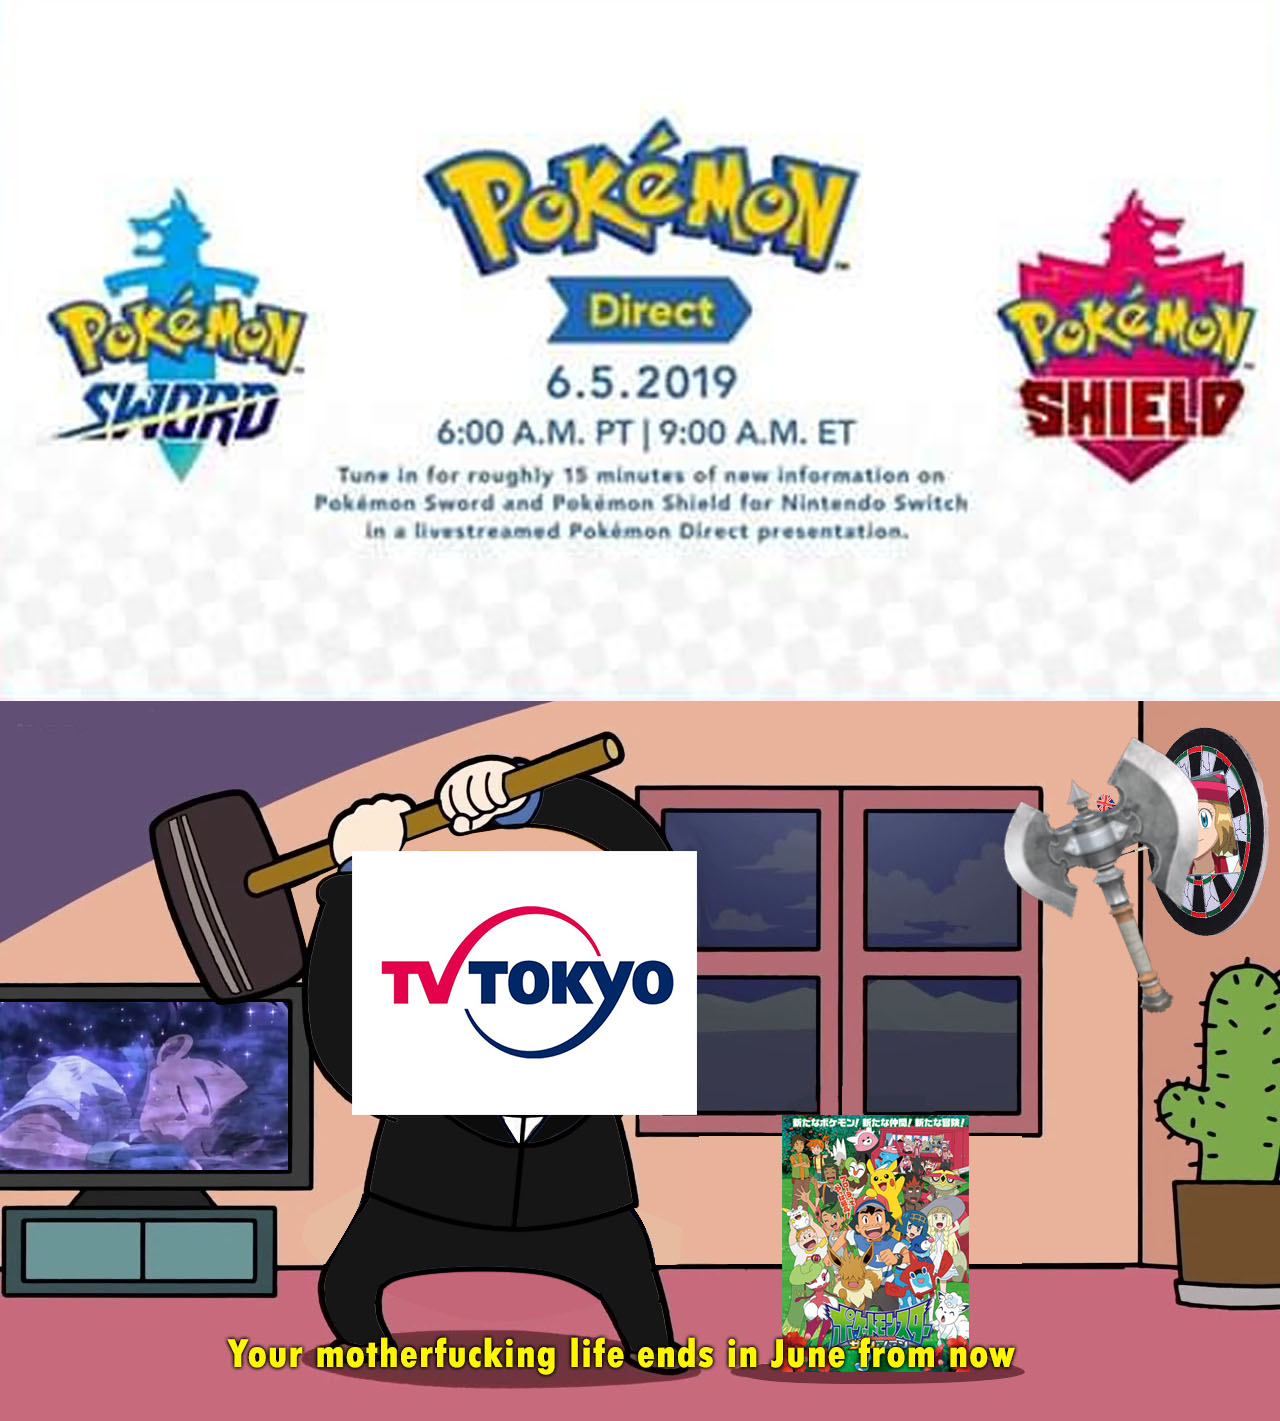 Your Motherfucking Life End In June Pokemon Sword And Shield